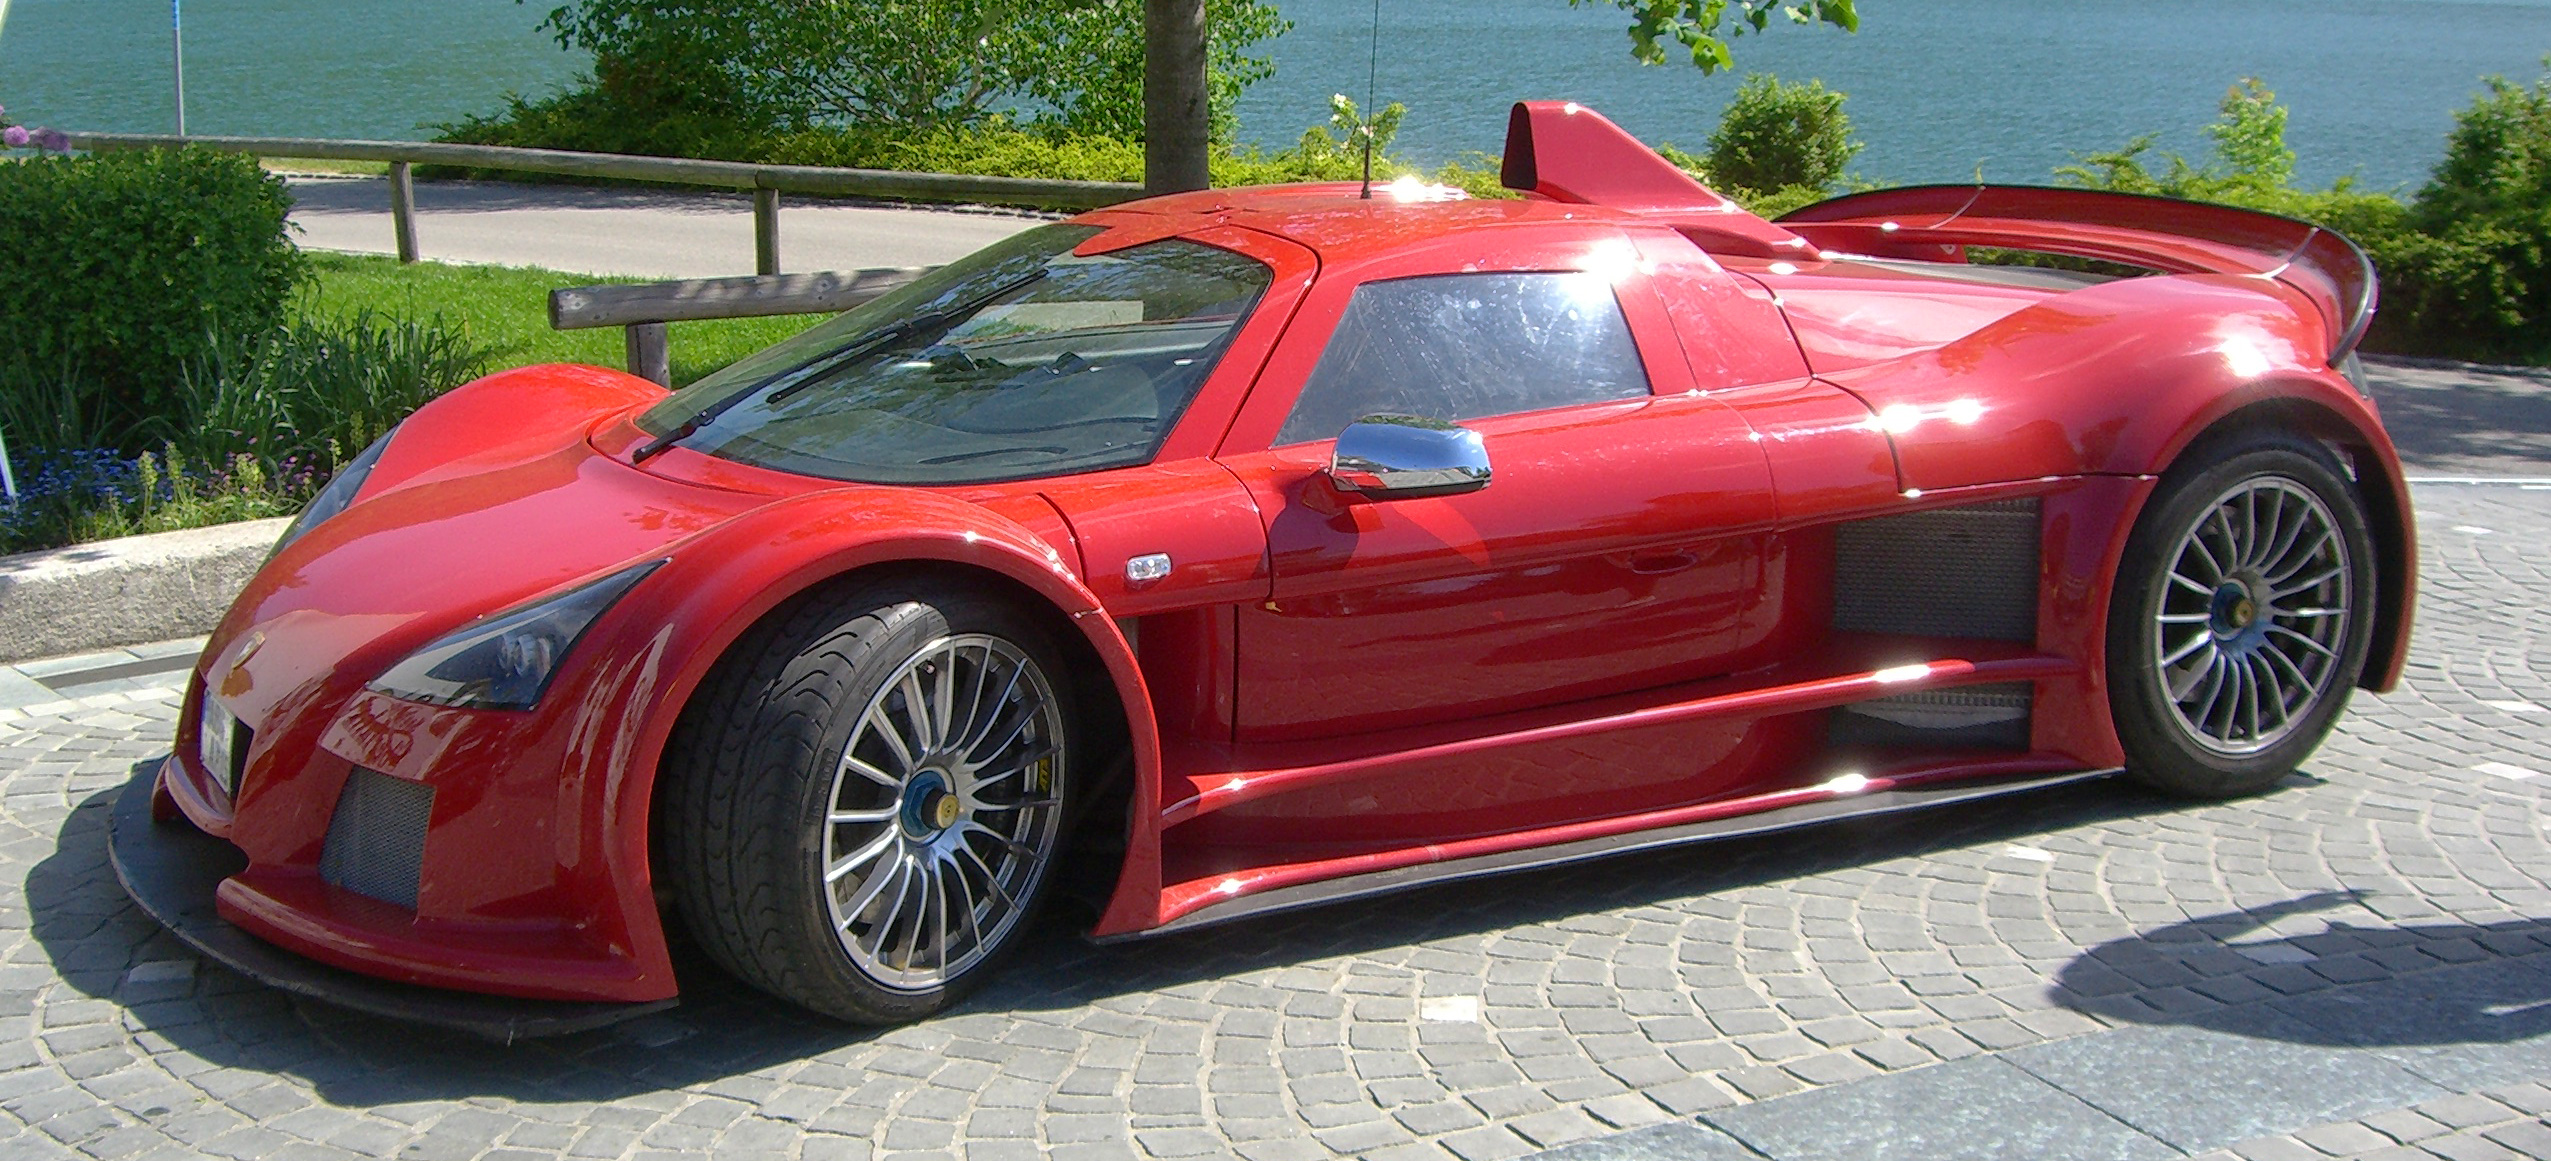 Gumpert Apollo Wikipedia